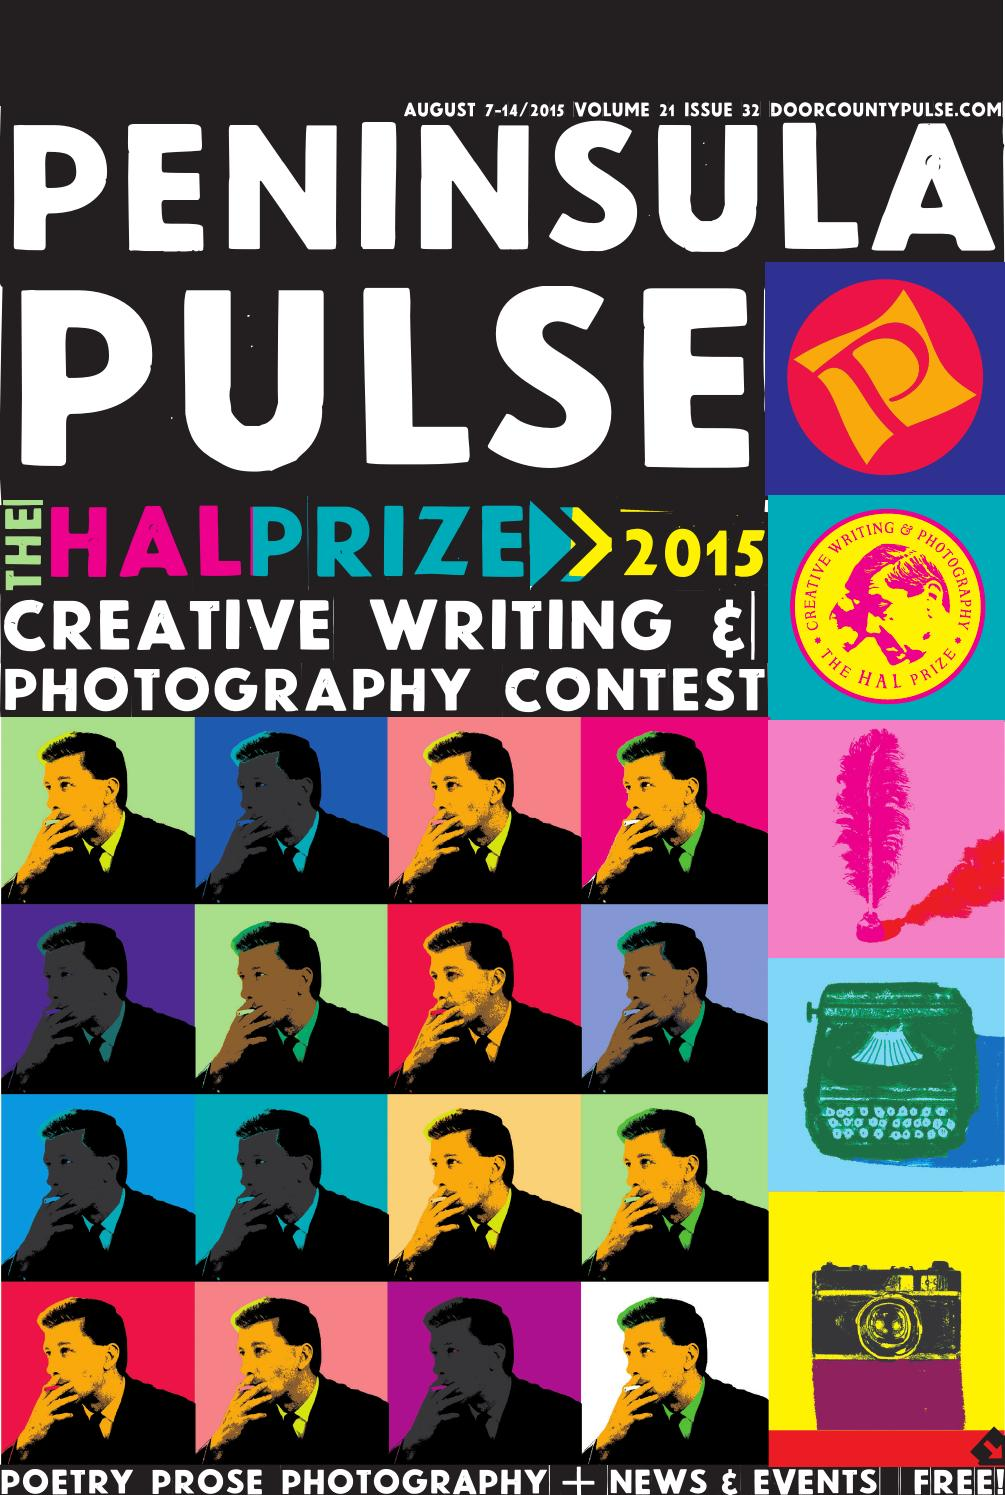 low priced 99f8c 226fe Peninsula Pulse 2015 Hal Prize, Creative Writing   Photography Contest by  Door County Pulse - issuu